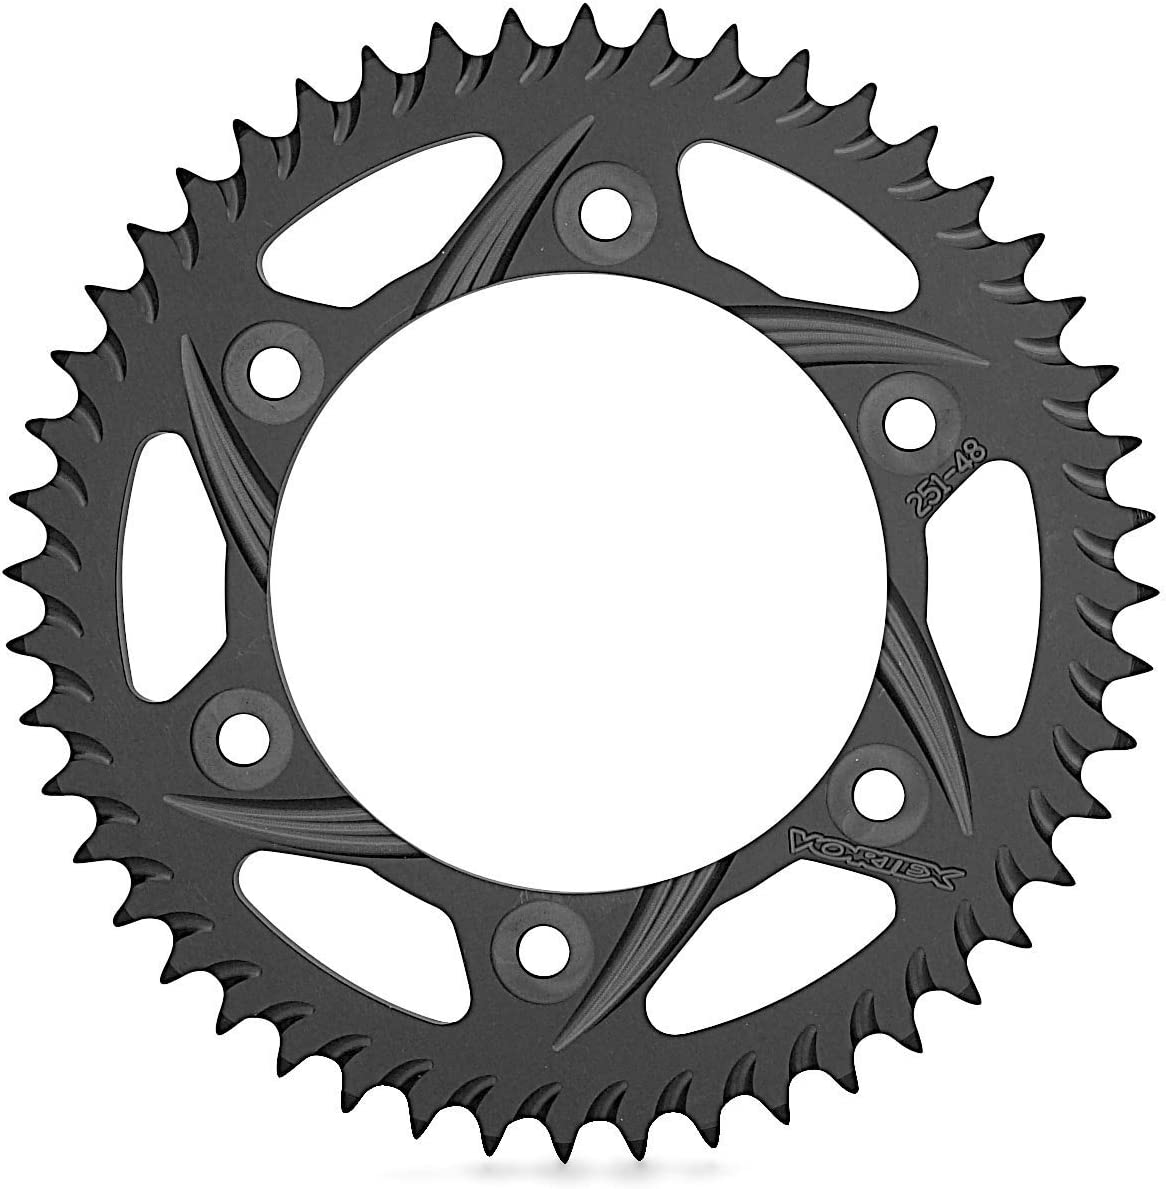 Vortex 803K-47 Solid Black 47-Tooth Rear Sprocket